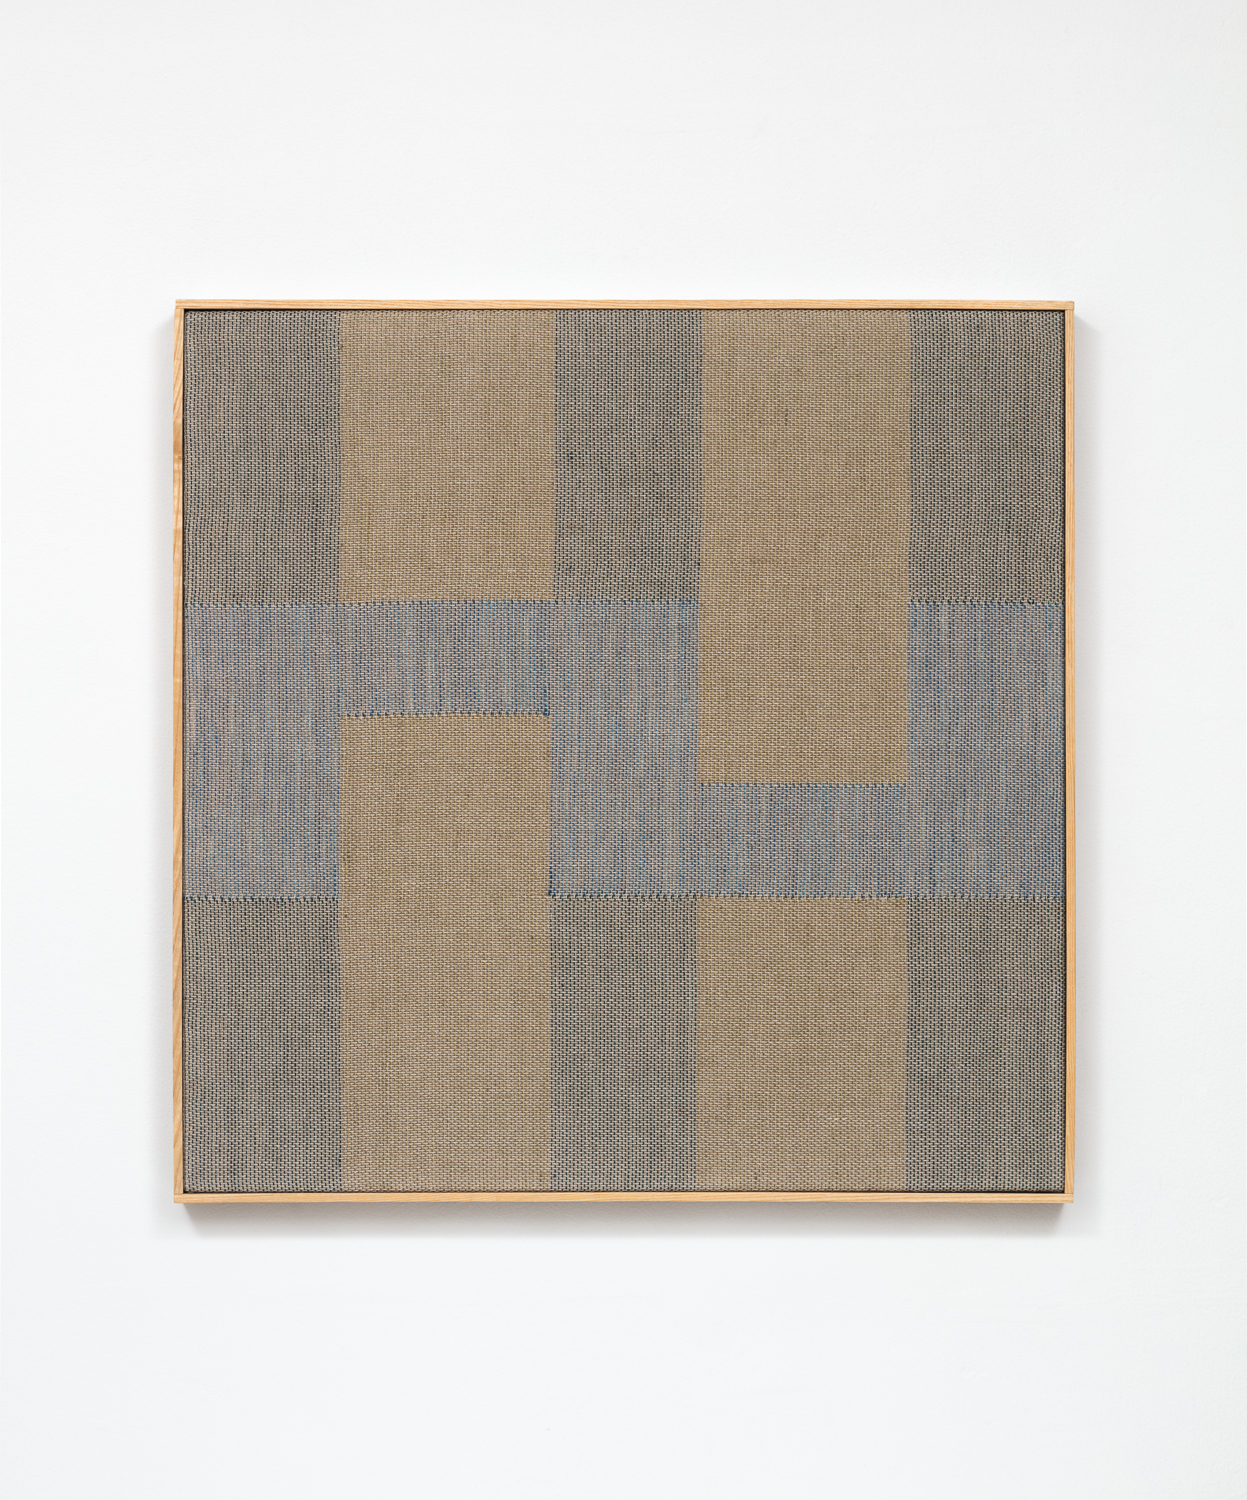 Untitled (Moss and Olive Vertical Bars)